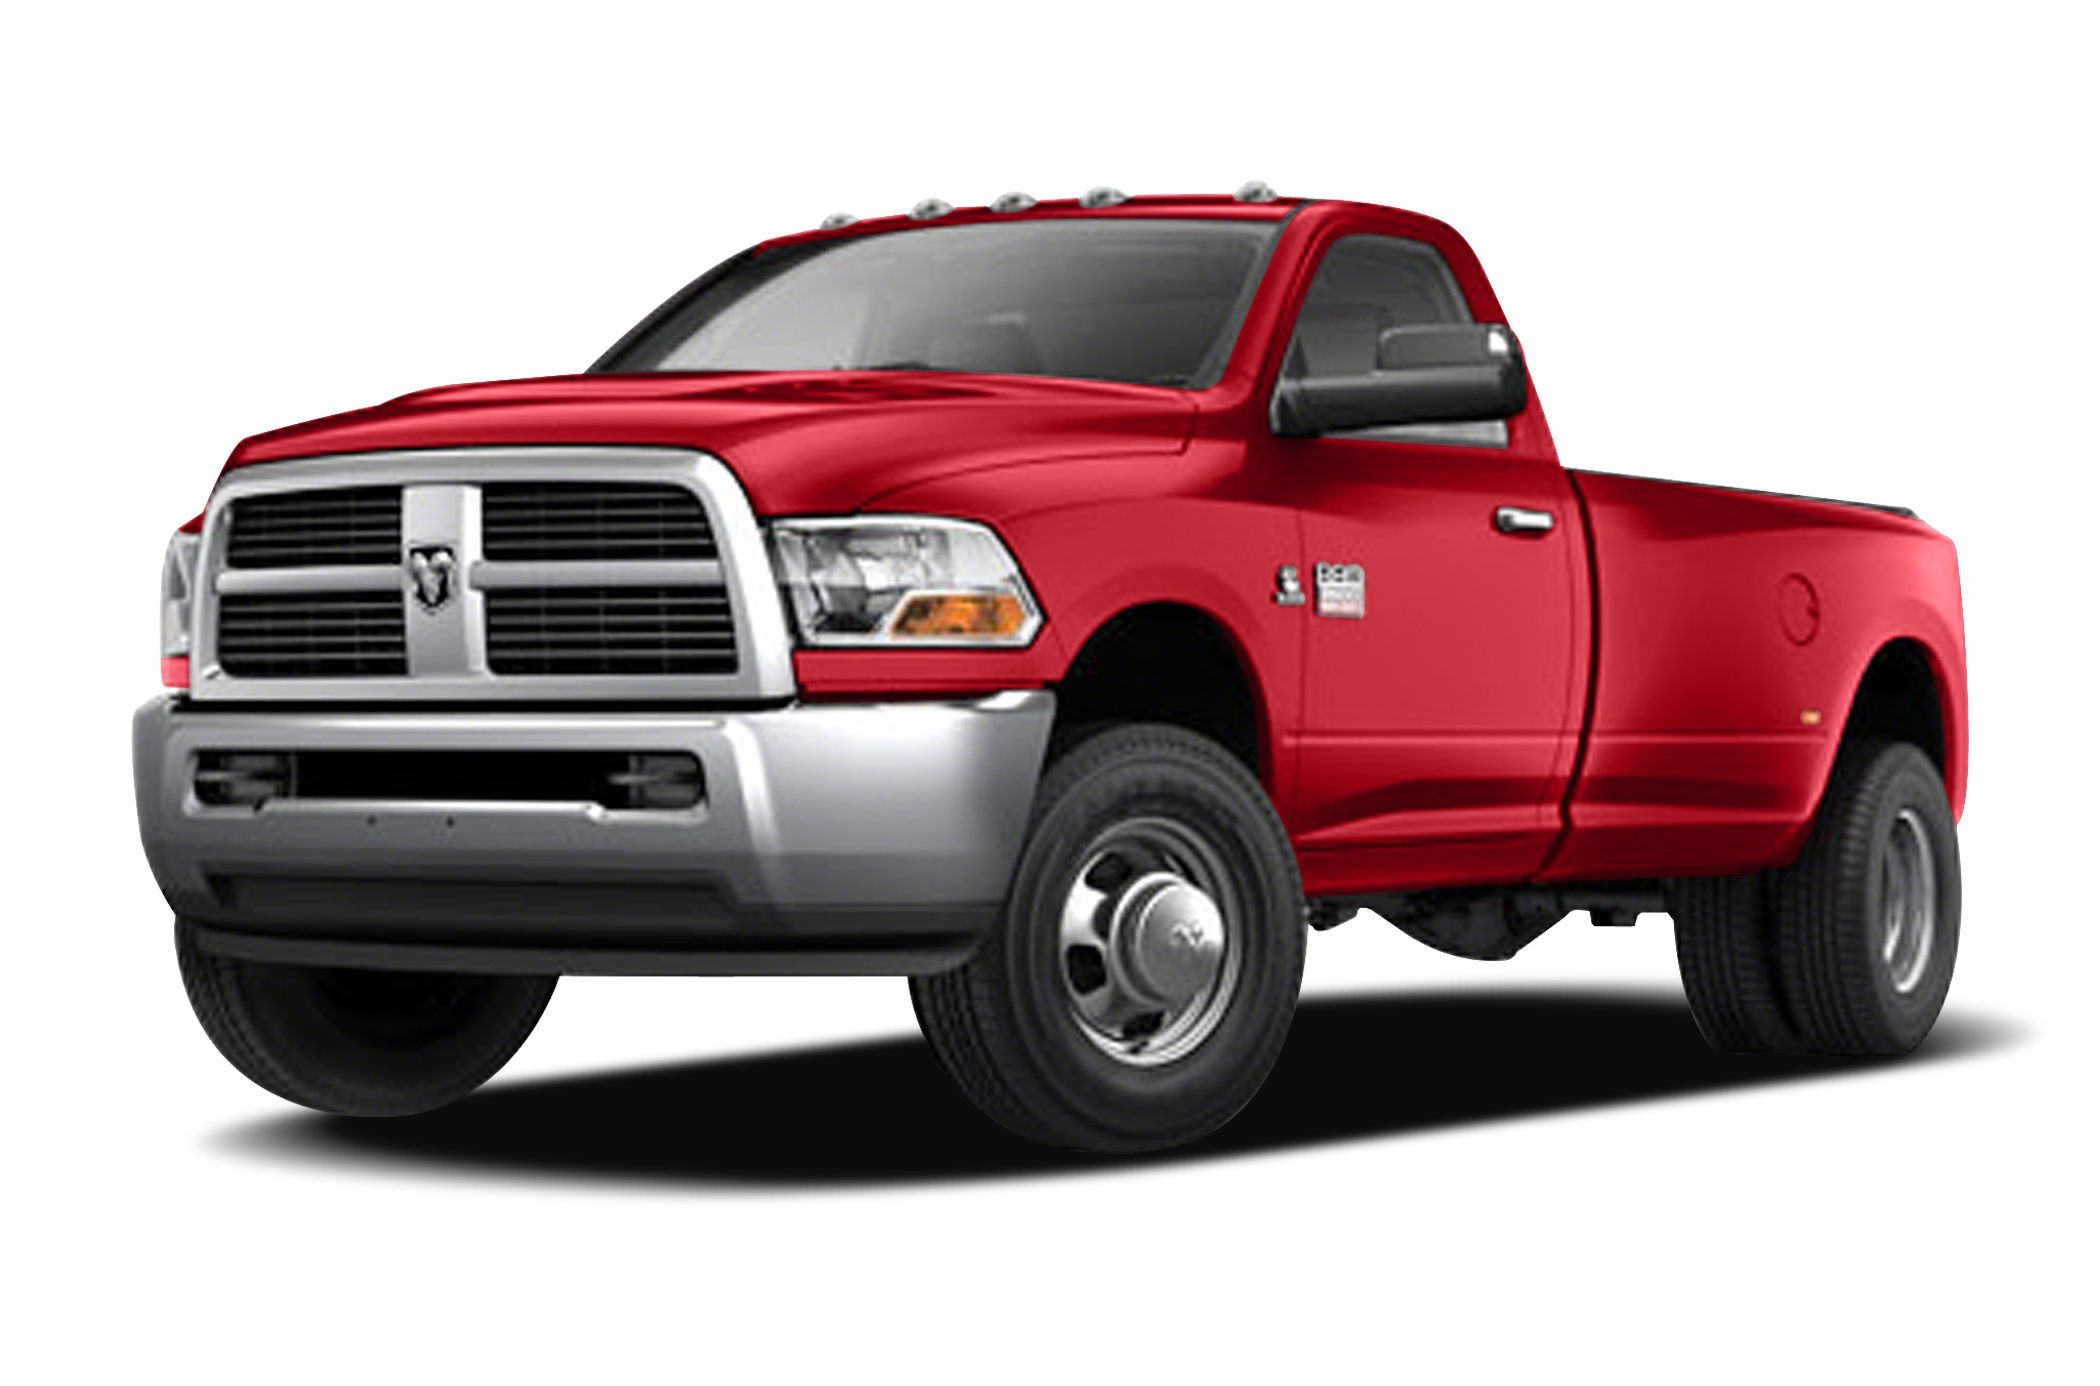 2011 Dodge Ram 3500 SLT Crew Cab Pickup for sale in Idaho Falls for $26,375 with 125,872 miles